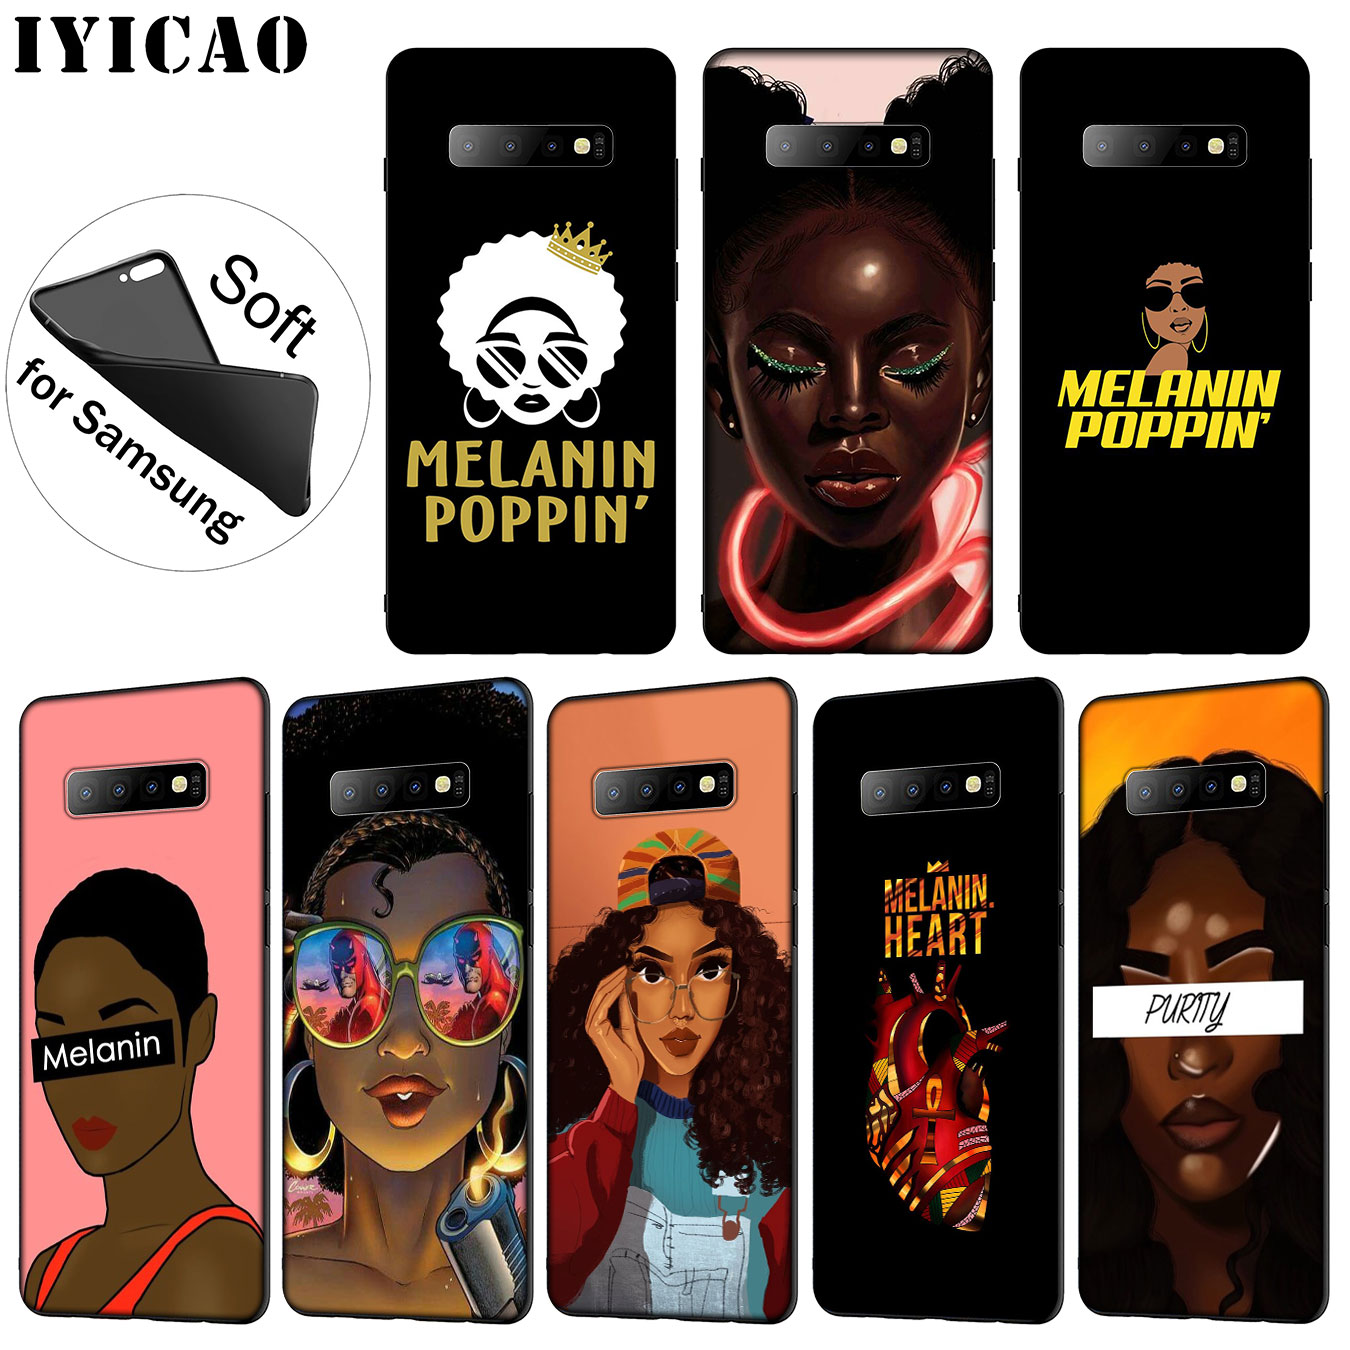 Fitted Cases Obedient Iyicao 2bunz Melanin Poppin Soft Silicone Phone Case For Samsung Galaxy S10 S9 S8 Plus S6 S7 Edge S10e E Tpu Black Cover Phone Bags & Cases